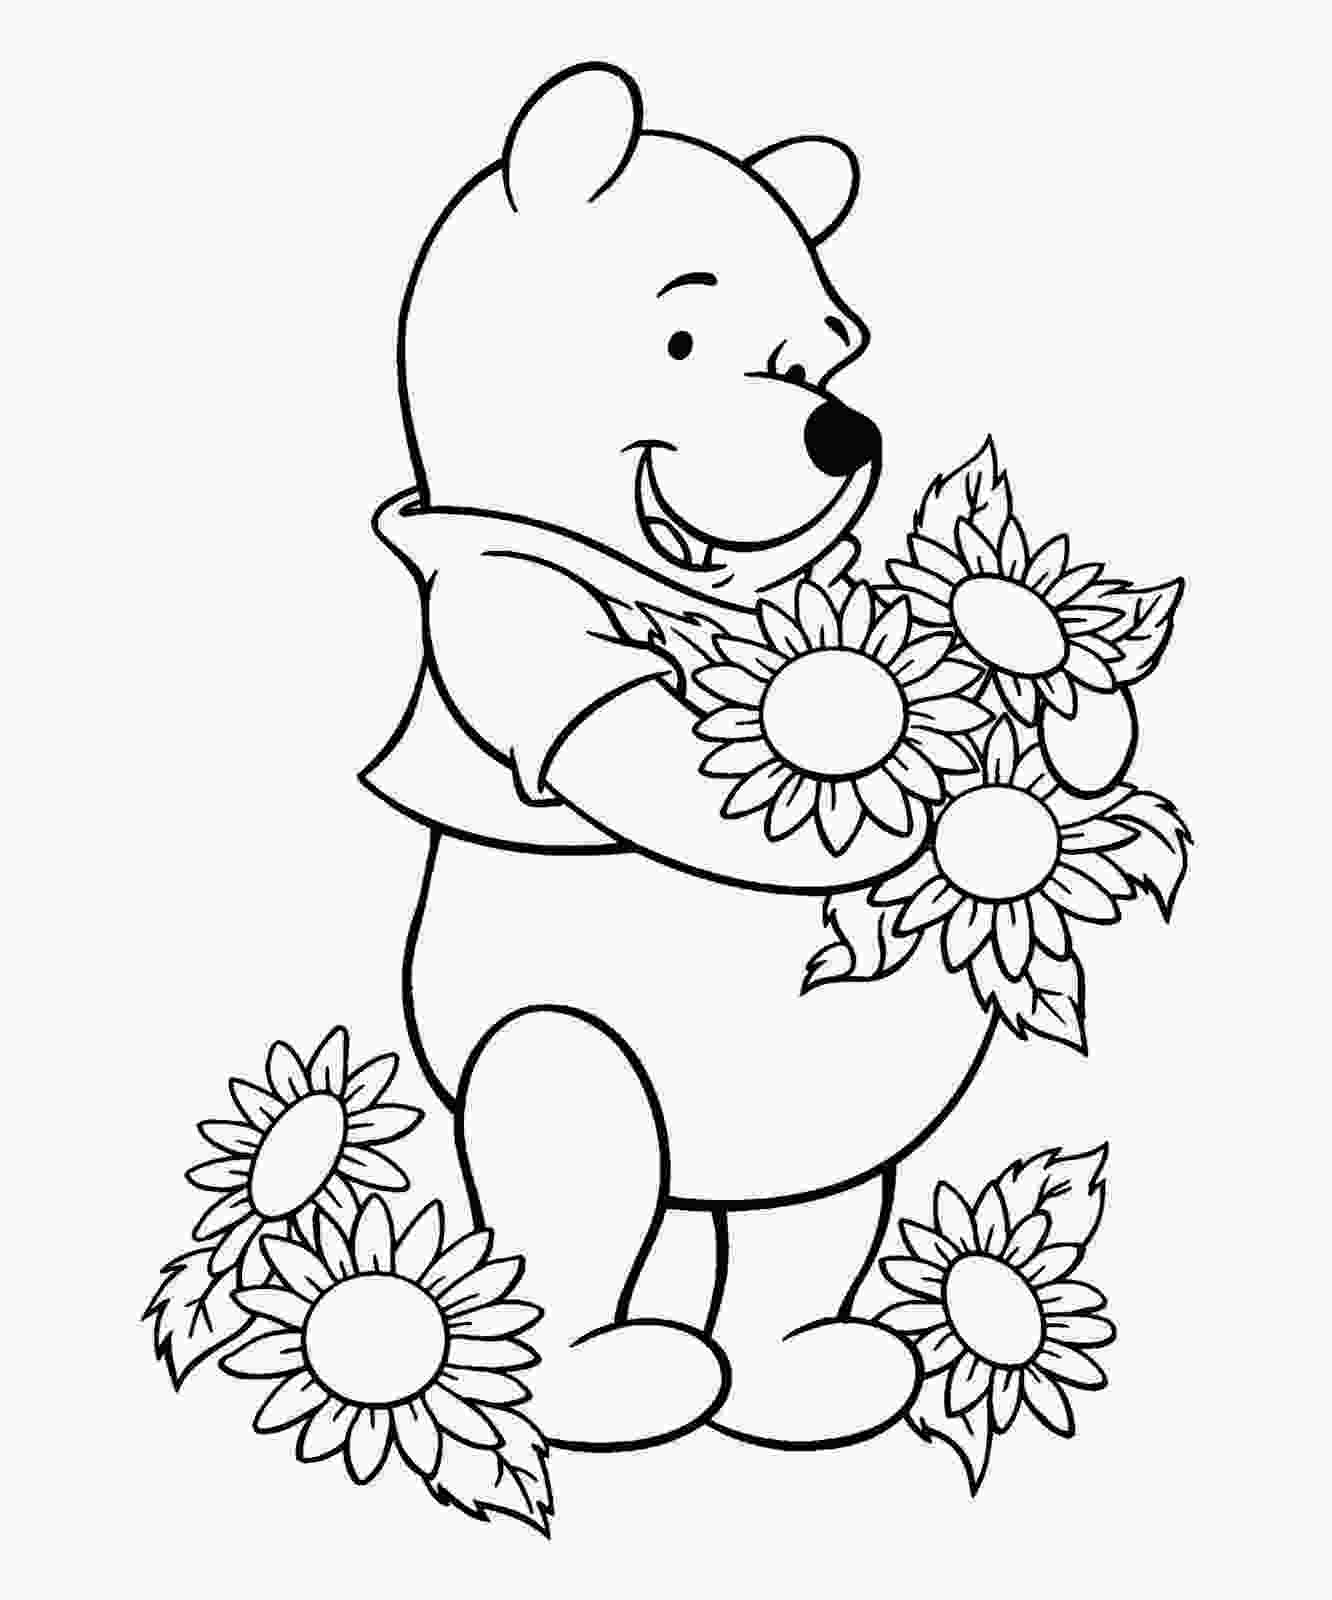 free winnie the pooh coloring pages winnie the pooh coloring sheets free coloring sheet